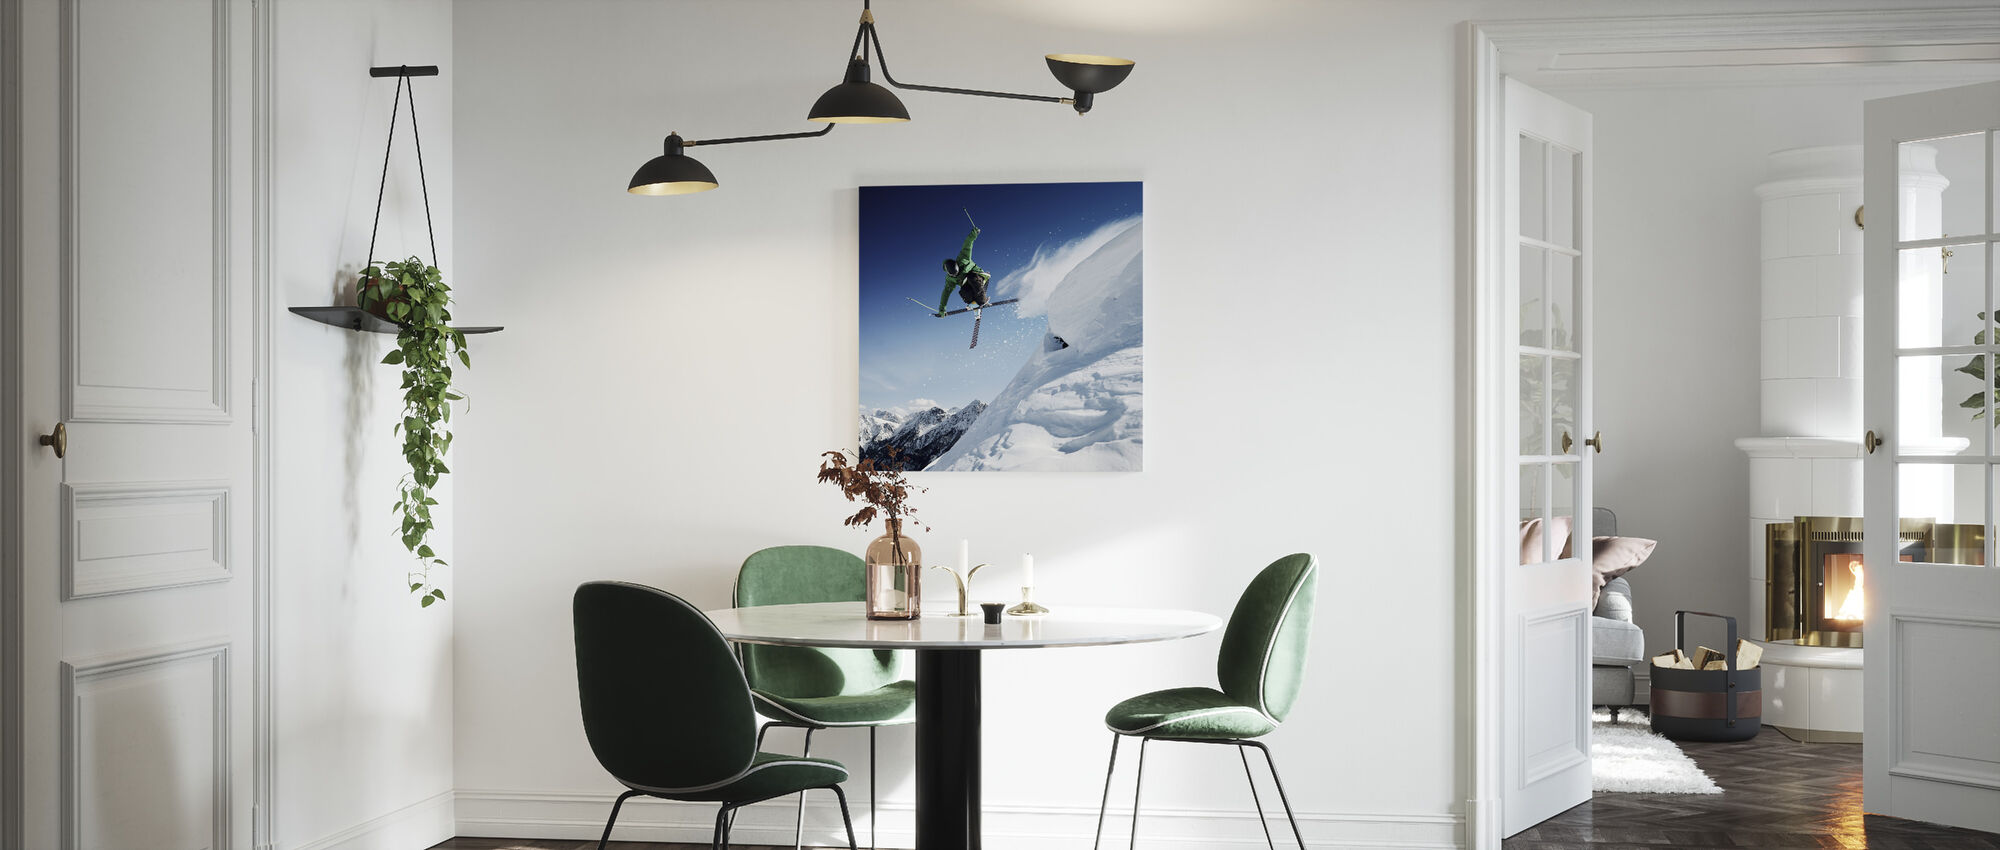 Jumping Skier - Canvas print - Kitchen